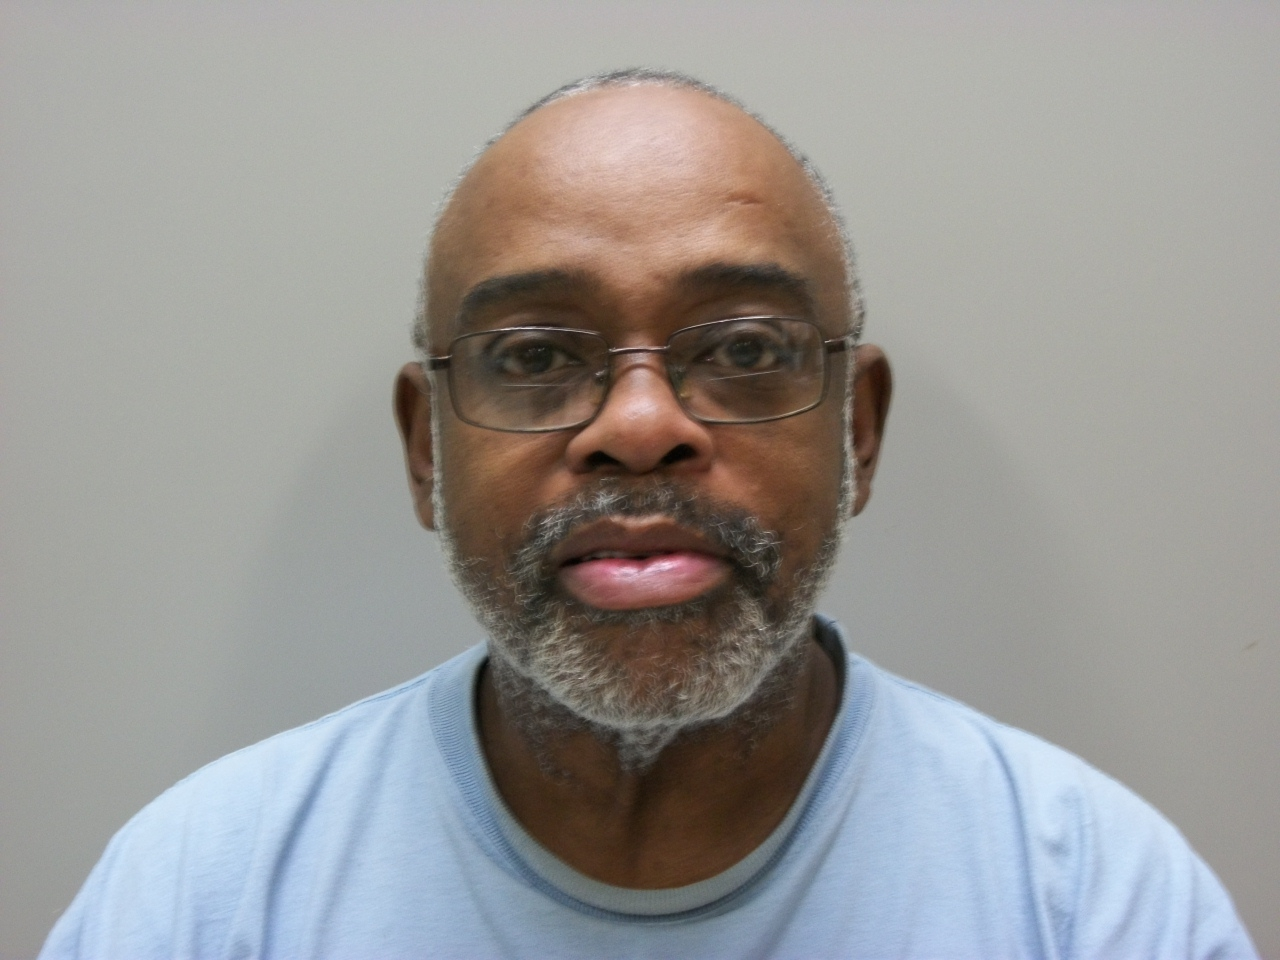 GREGORY MASHAWN SEAY (WCSO)